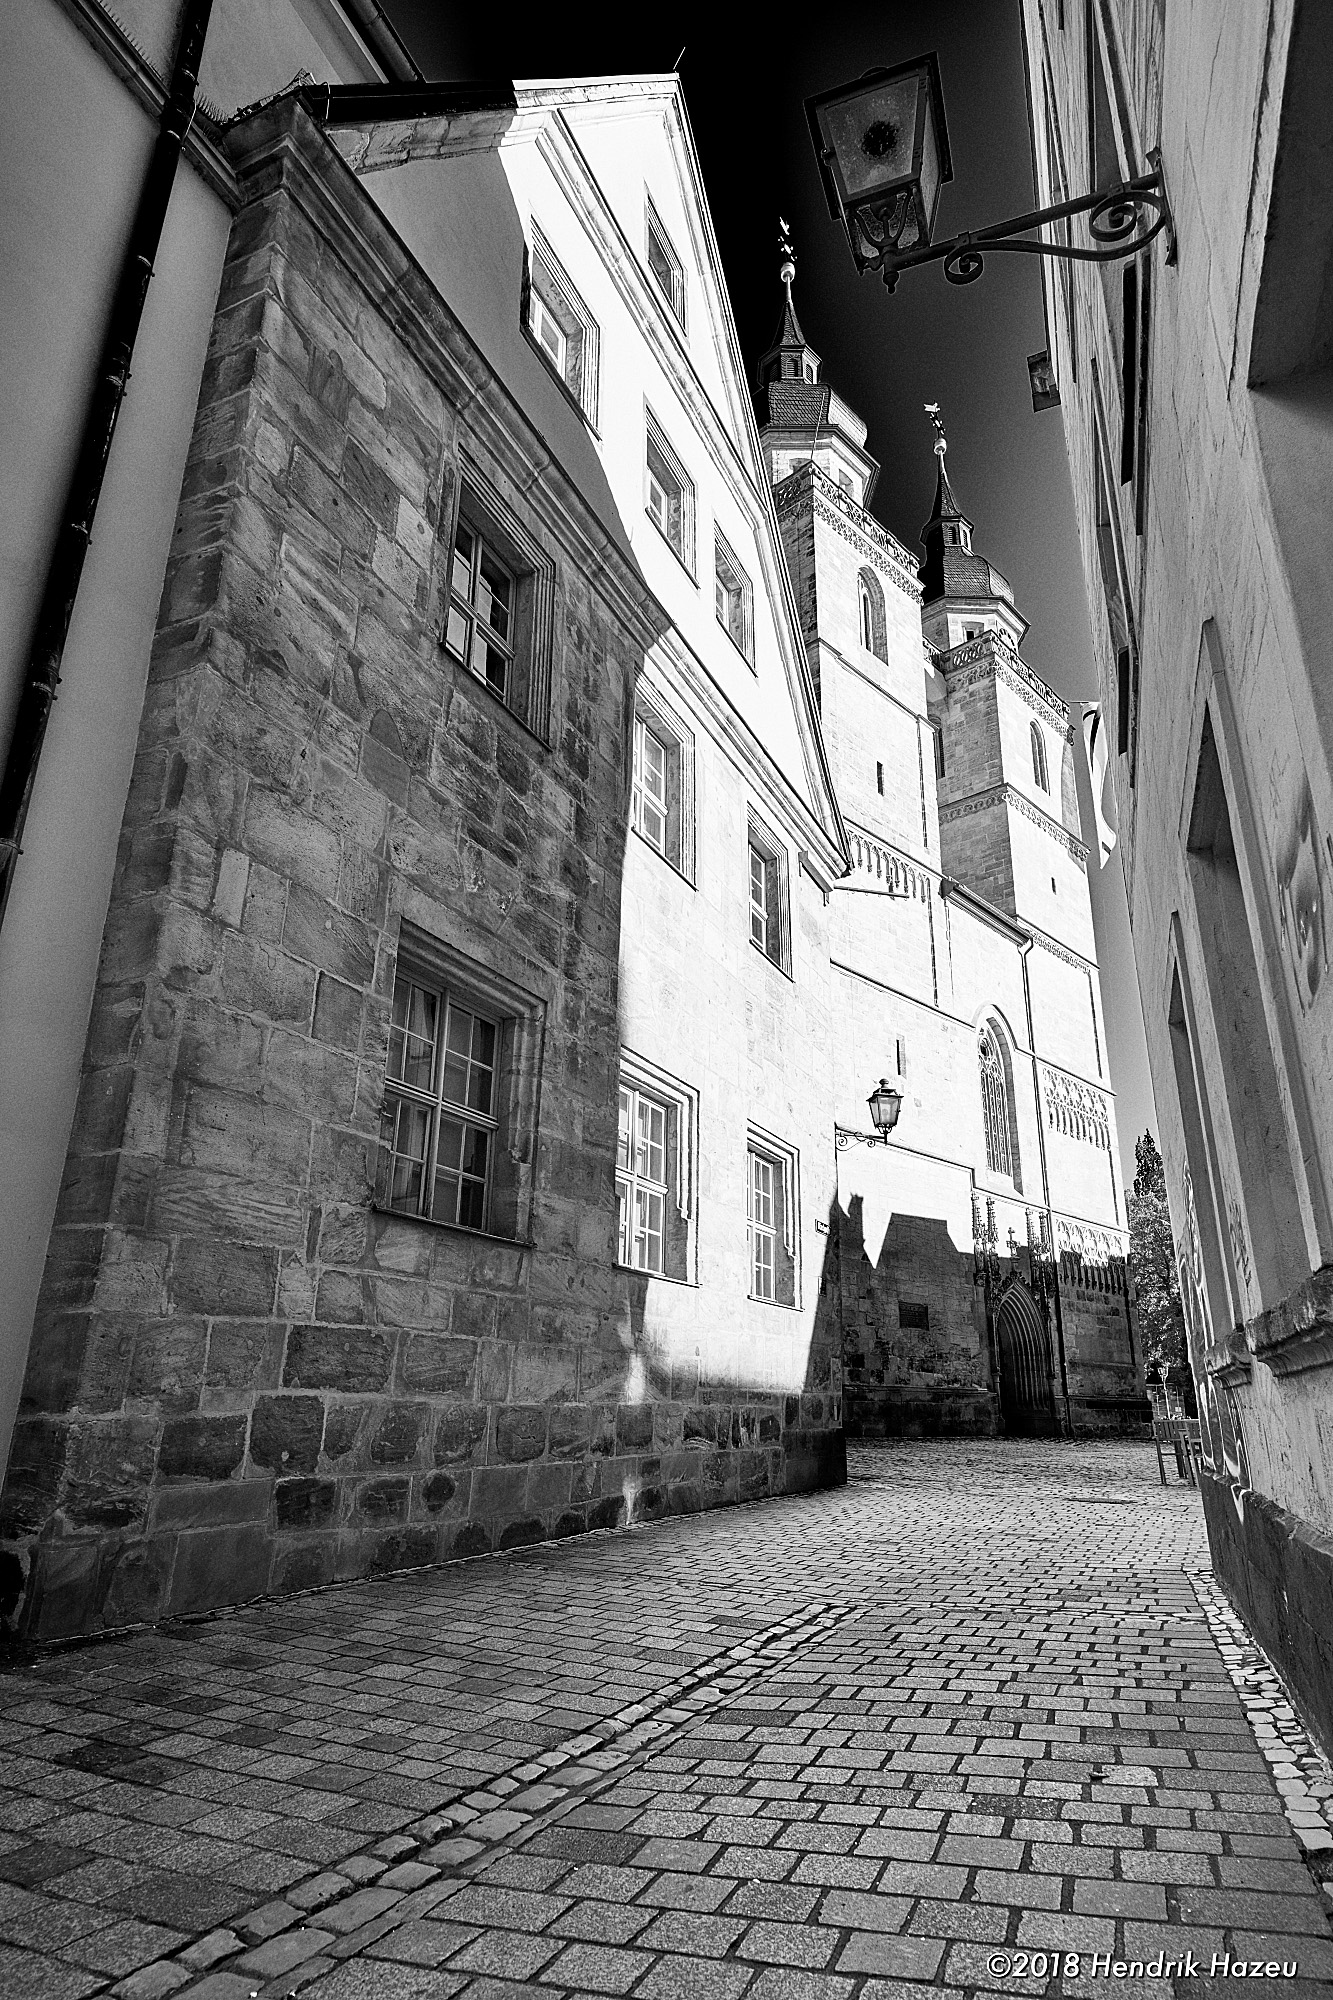 Alleyway with city church in Bayreuth, seen thru Nikkor AF-S 20mm f/1.8G @f/8, 1/40sec, ISO 80